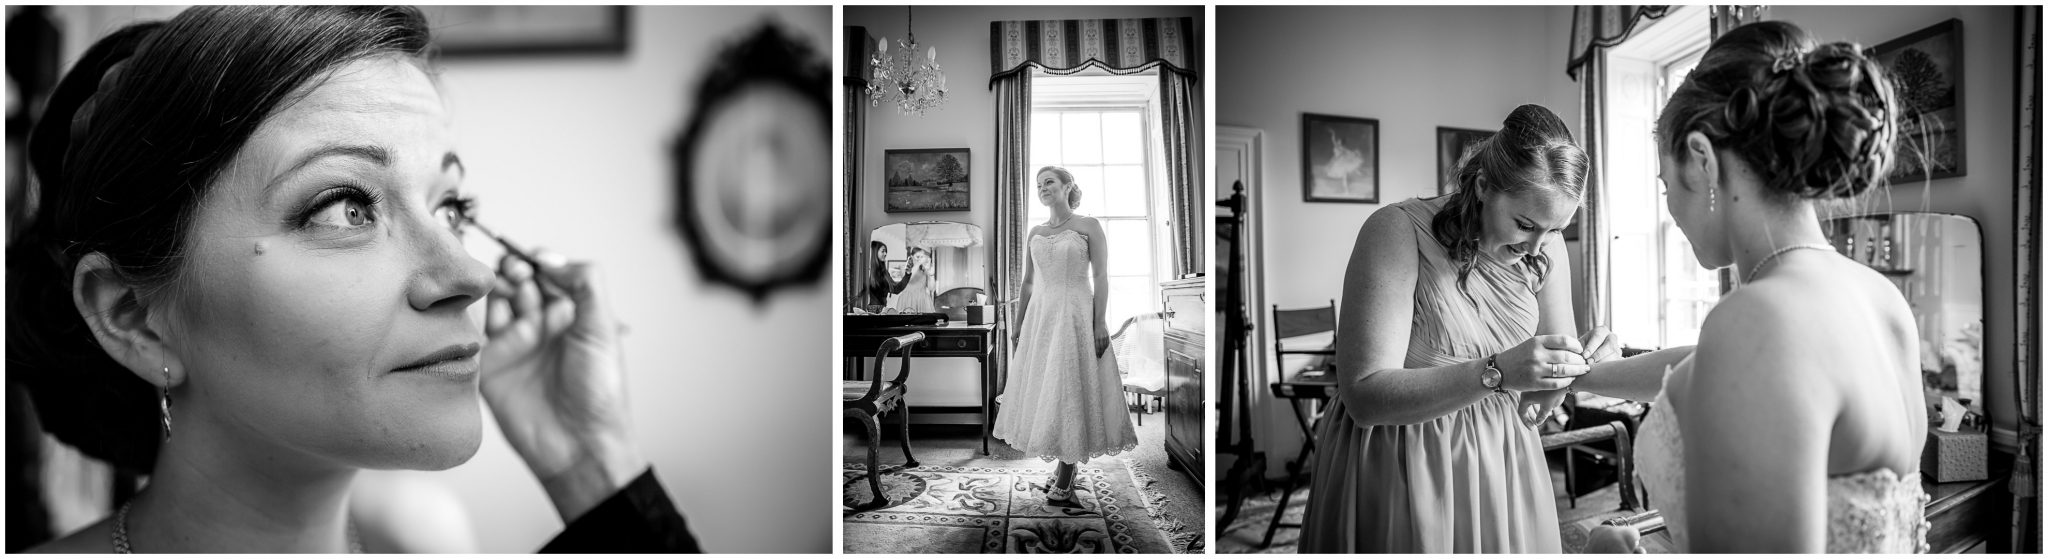 Avington Park wedding photography bride getting ready black and white